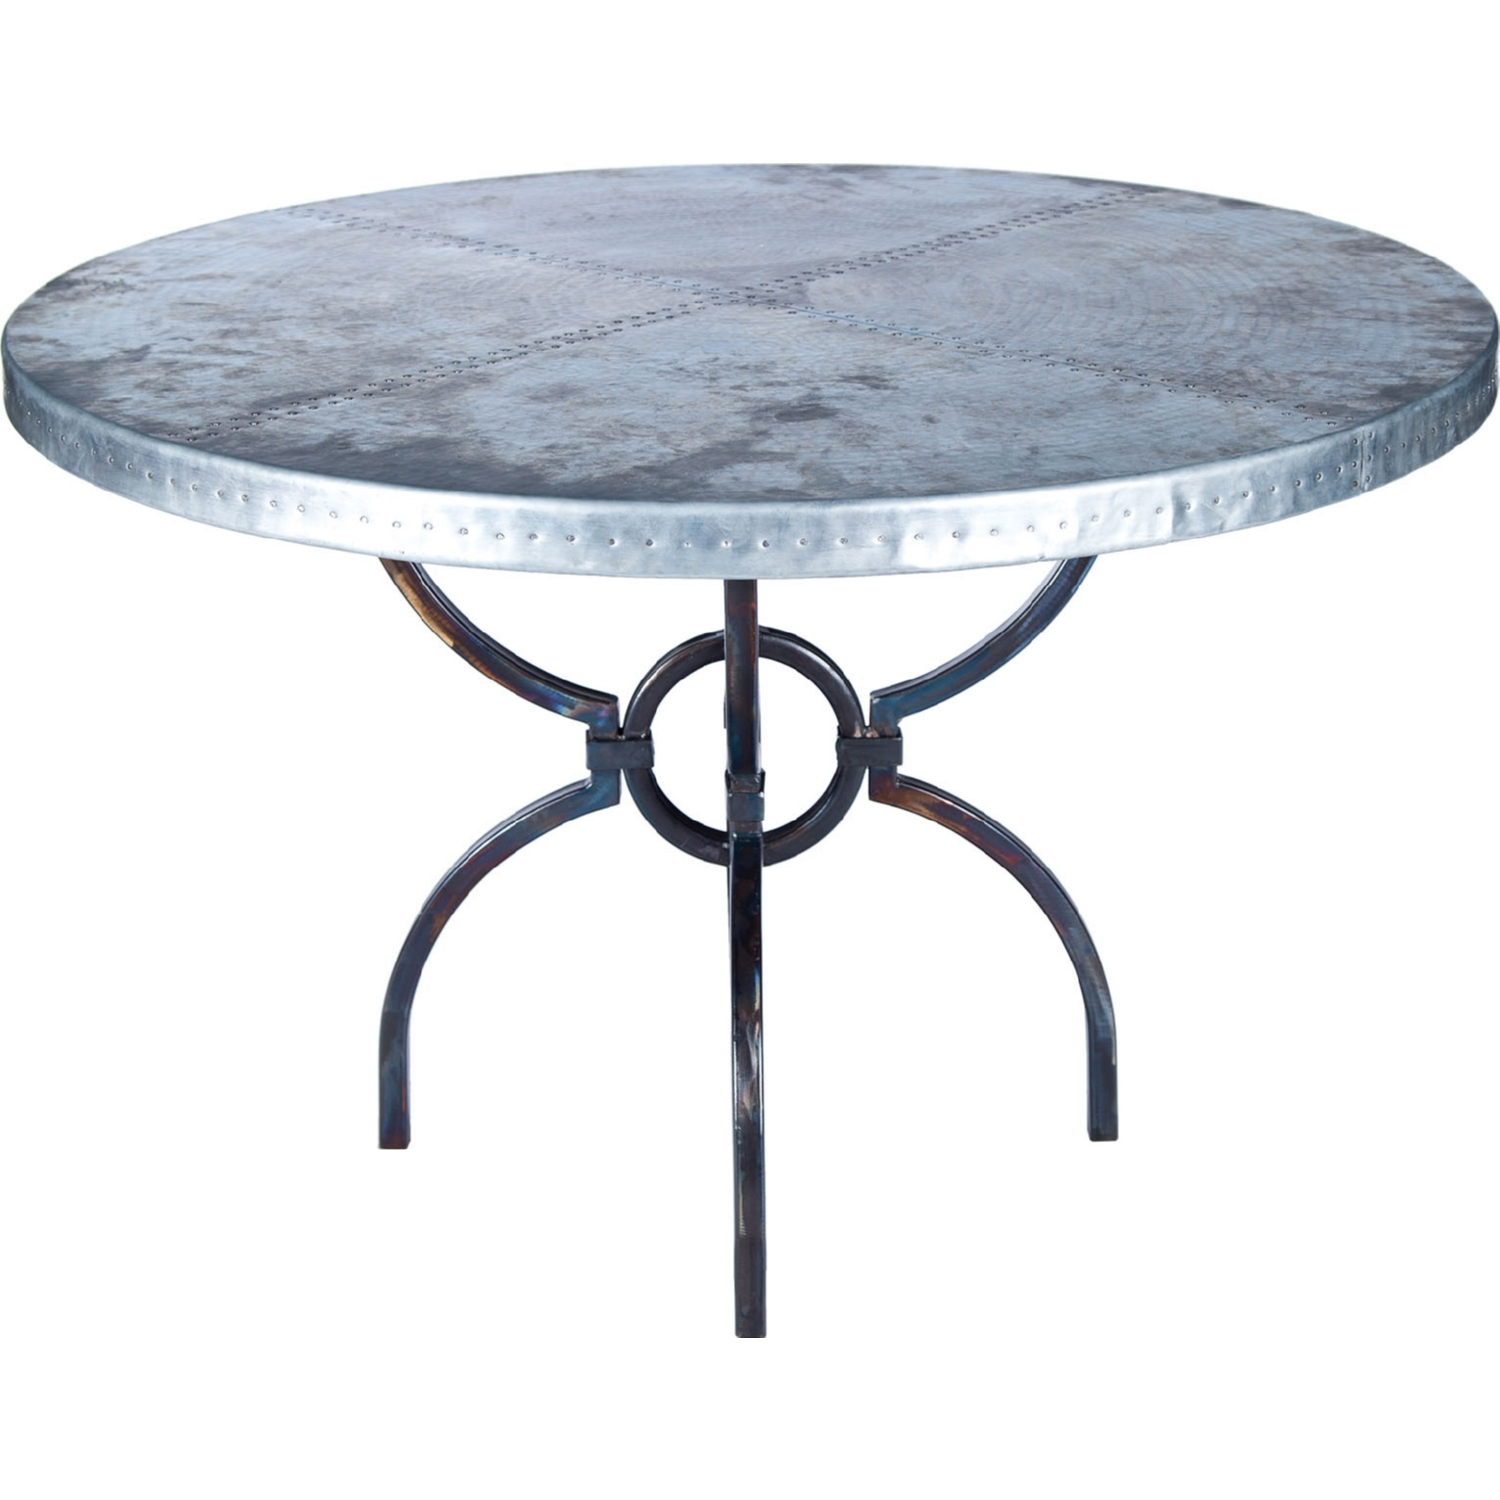 Industrial Style Round Dining Table Prima Design Source Logan Dining Table In Hand Forged Iron W 54